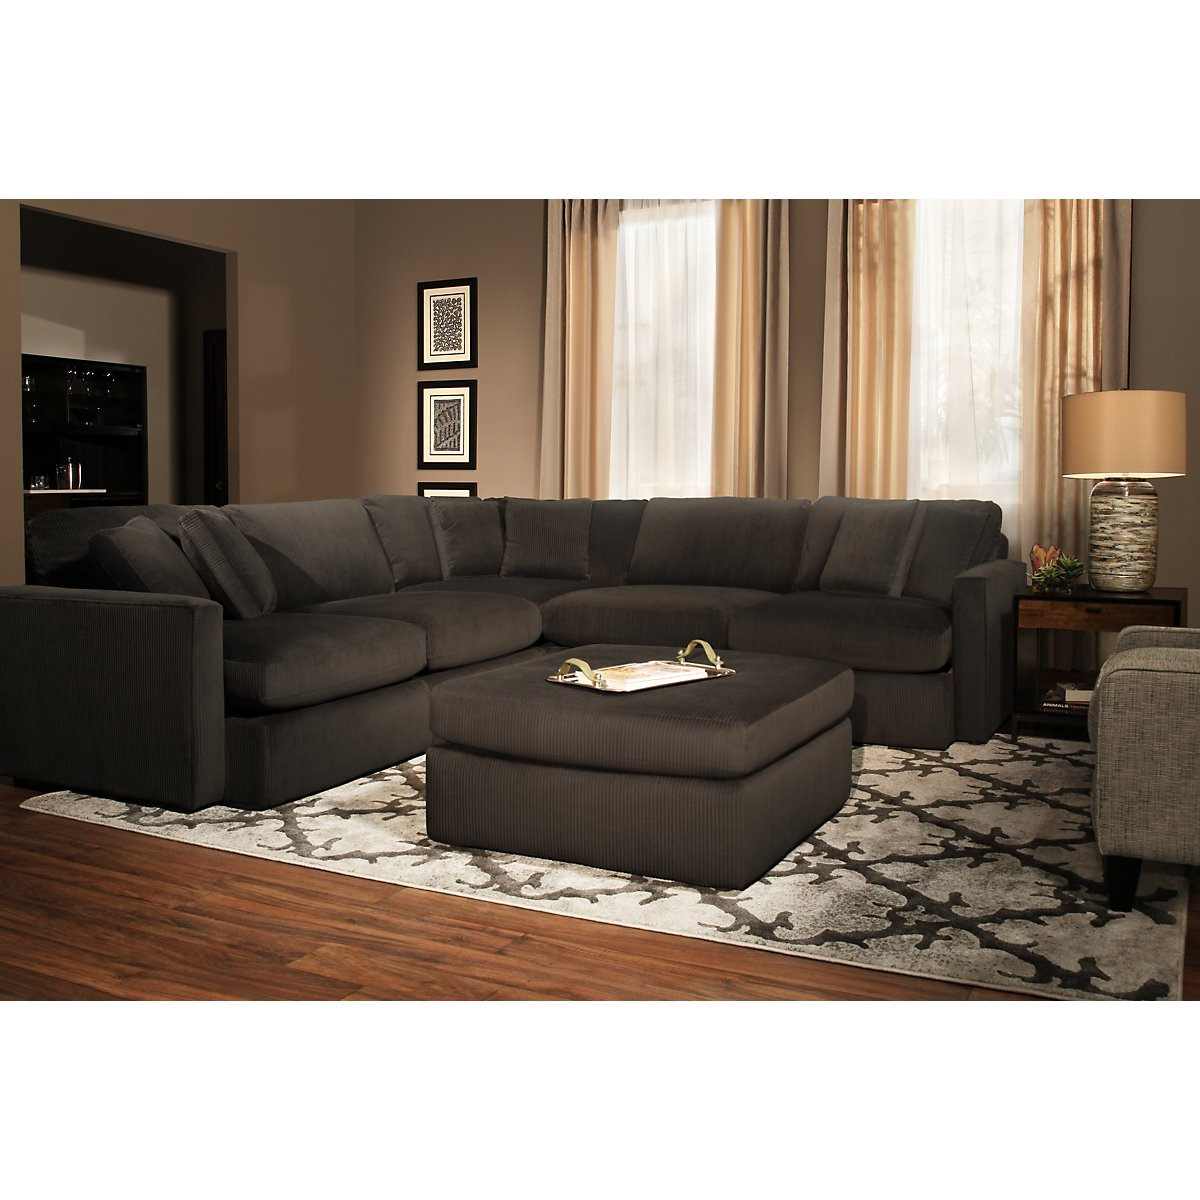 Kevin Charles Sectional Sofa